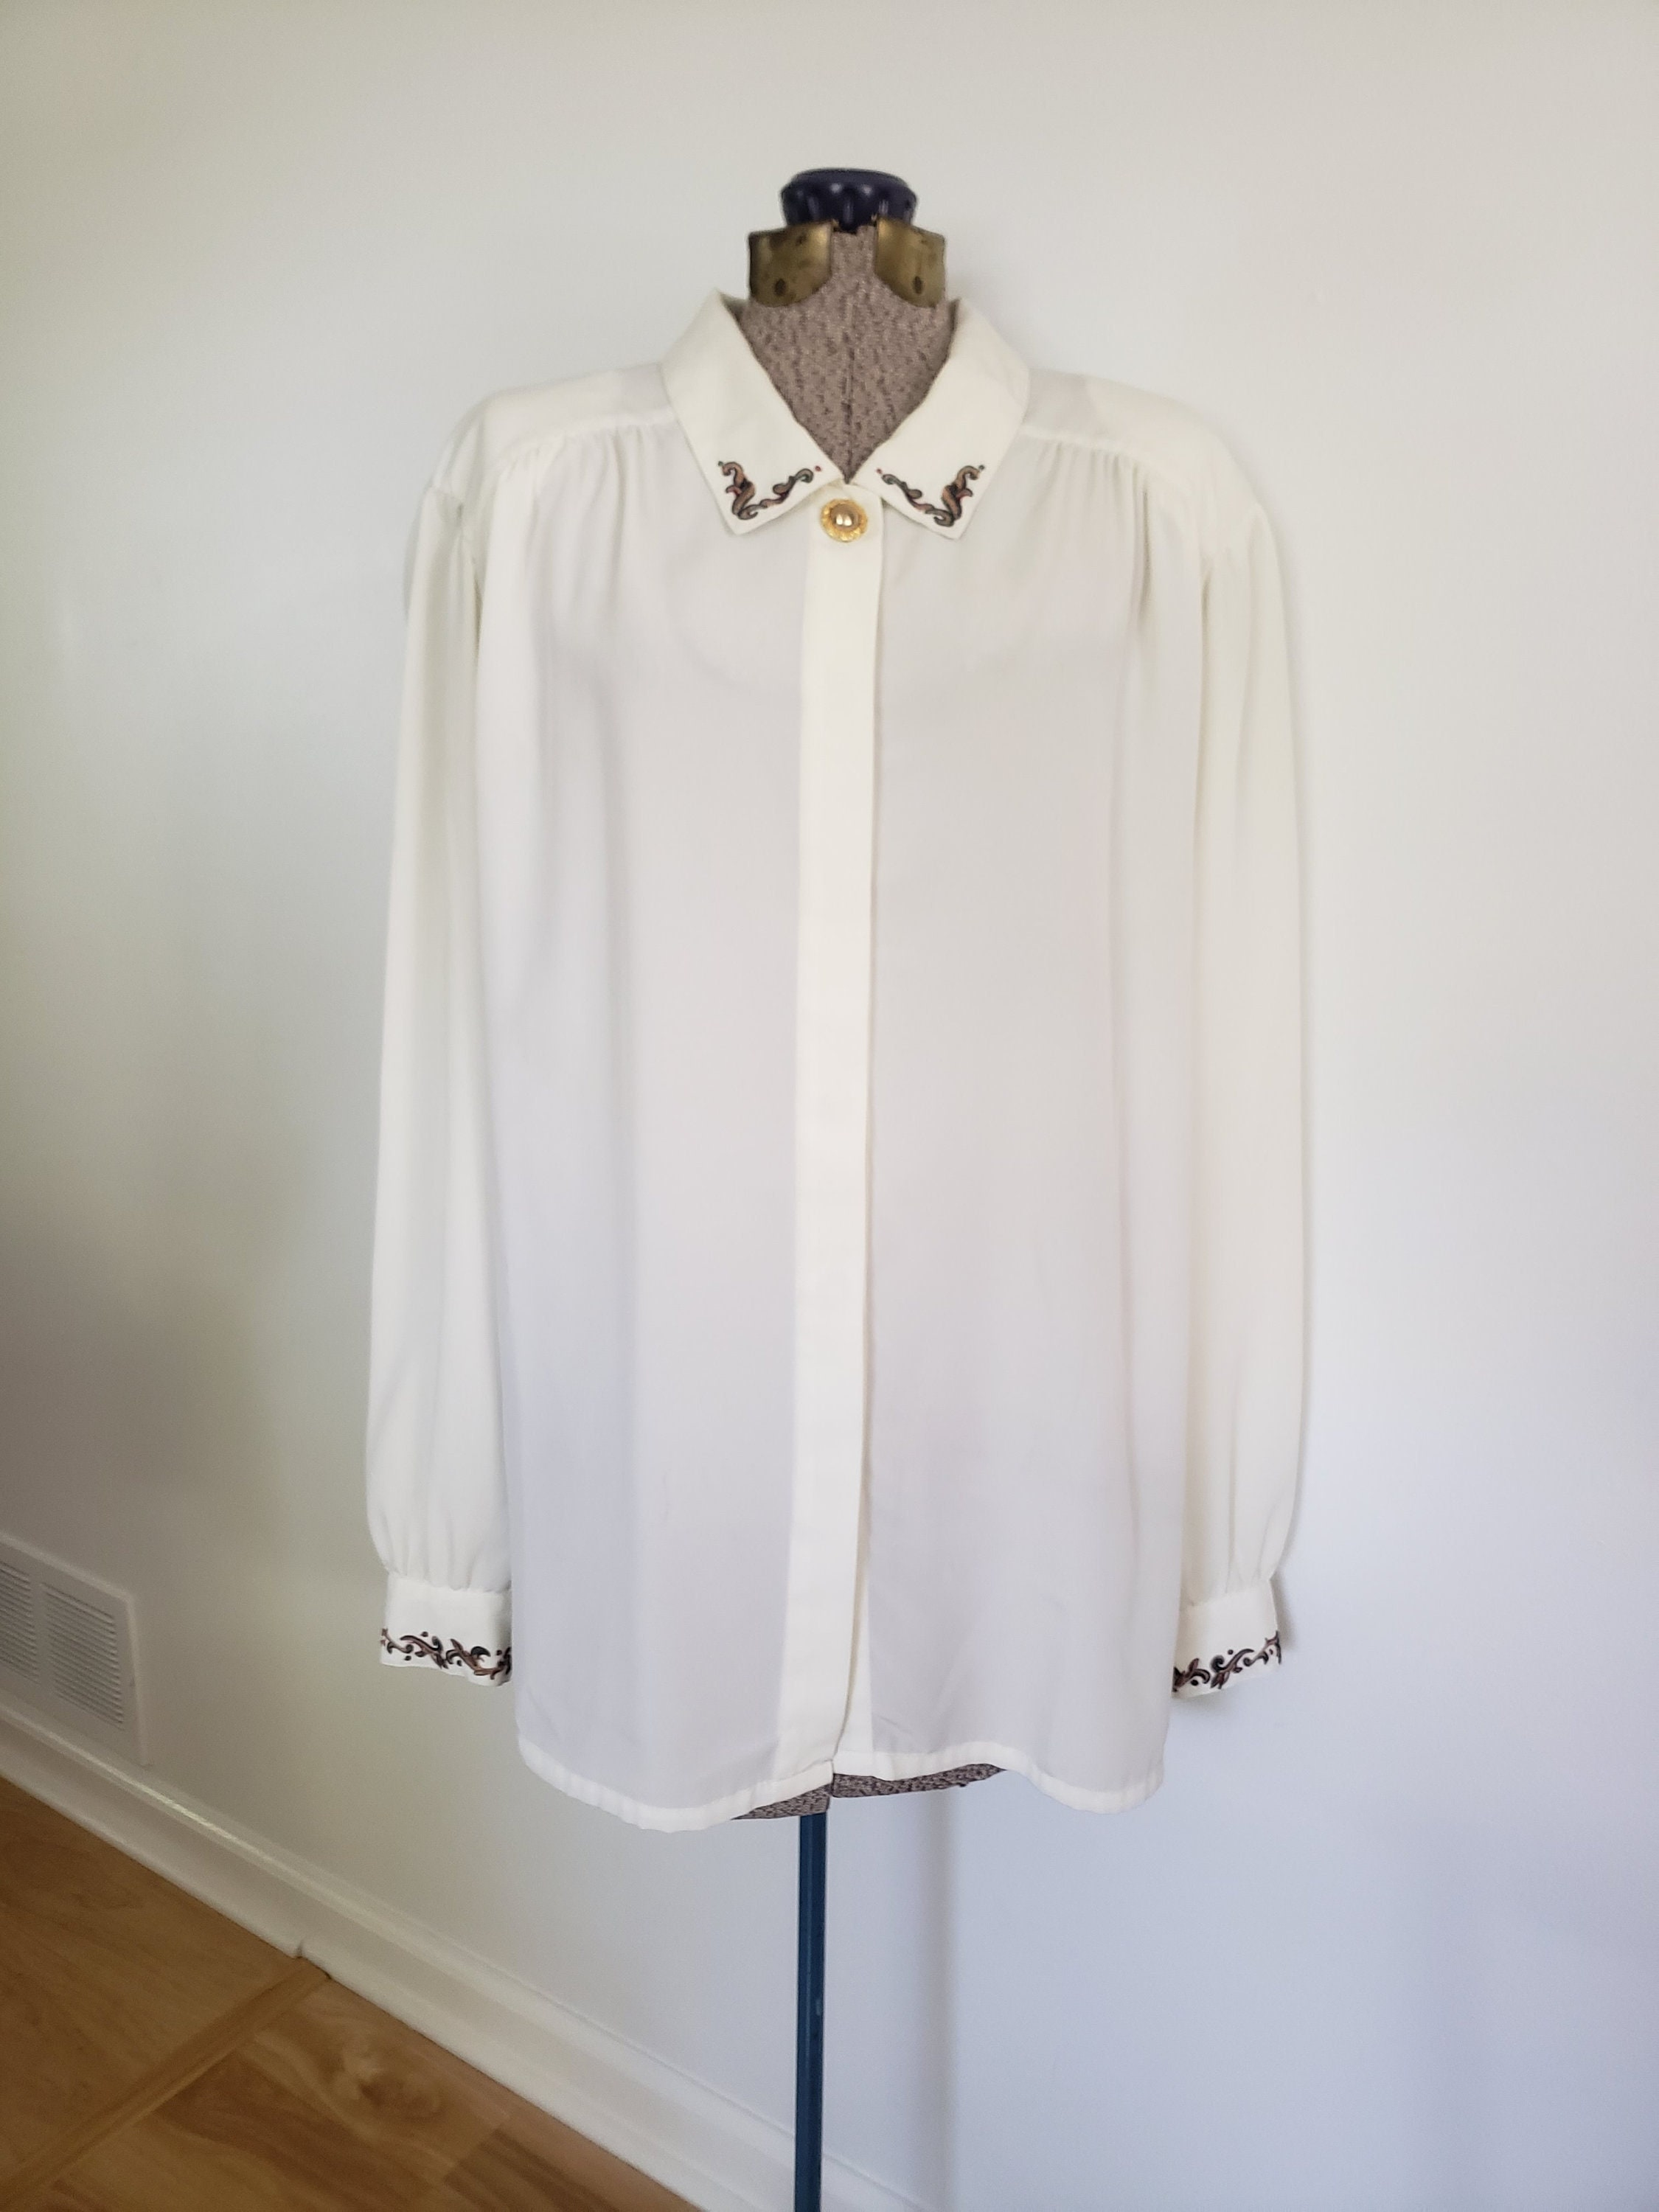 80s Dresses | Casual to Party Dresses Vintage Koret Embroidered Collar  Cuffs Button Down Blouse - Retro 1980s Simple Elegant Dress Shirt Lovely Womens Fashion Clothing $18.00 AT vintagedancer.com